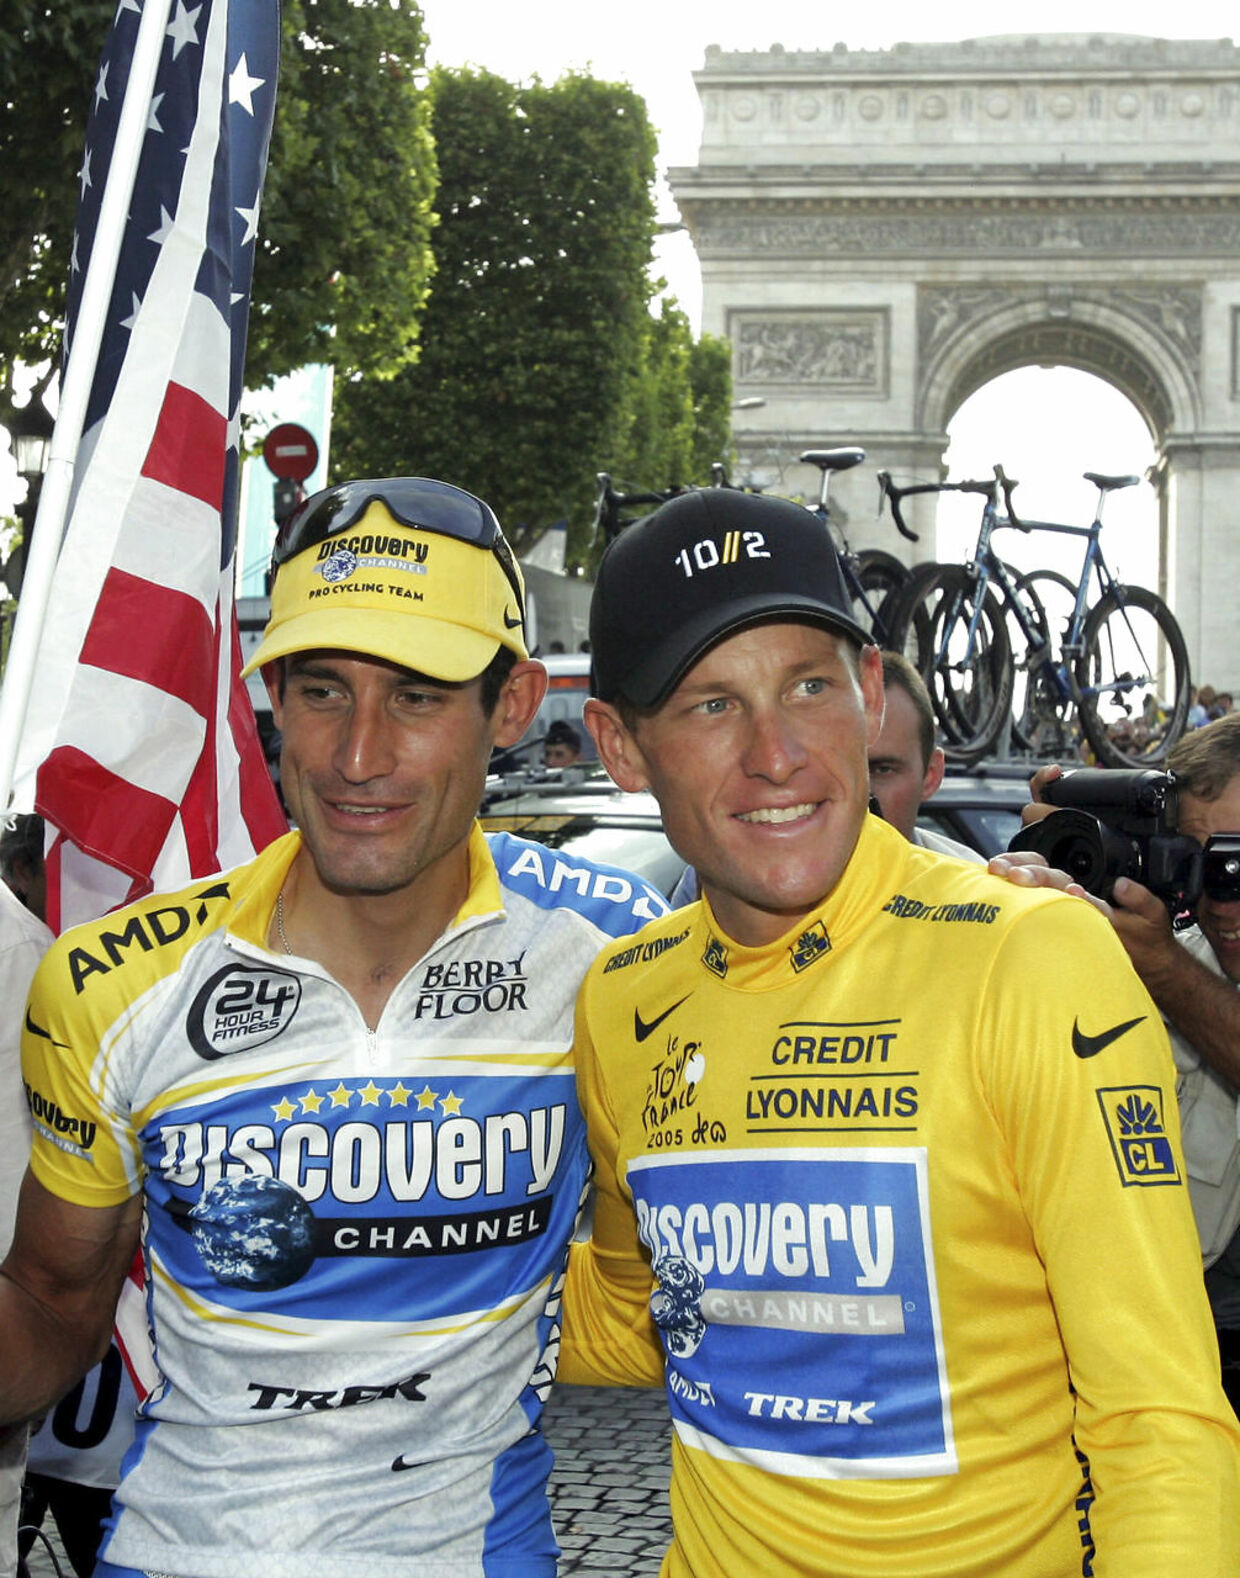 Discovery Channel team rider Lance Armstrong of the U.S. (R) and team mate George Hincapie pose for supporters in Paris after Armstrong won his seventh straight Tour de France, July 24, 2005. George Hincapie, one of Lance Armstrong's former team mates and closest allies, has admitted to using performance-enhancing drugs. The 39-year-old American, who rode alongside Armstrong in each of his seven Tour de France wins, released a statement on Wednesday confessing that he cheated. Picture taken July 24, 2005. REUTERS/Philippe Wojazer/Files (FRANCE - Tags: SPORT CYCLING DRUGS SOCIETY)